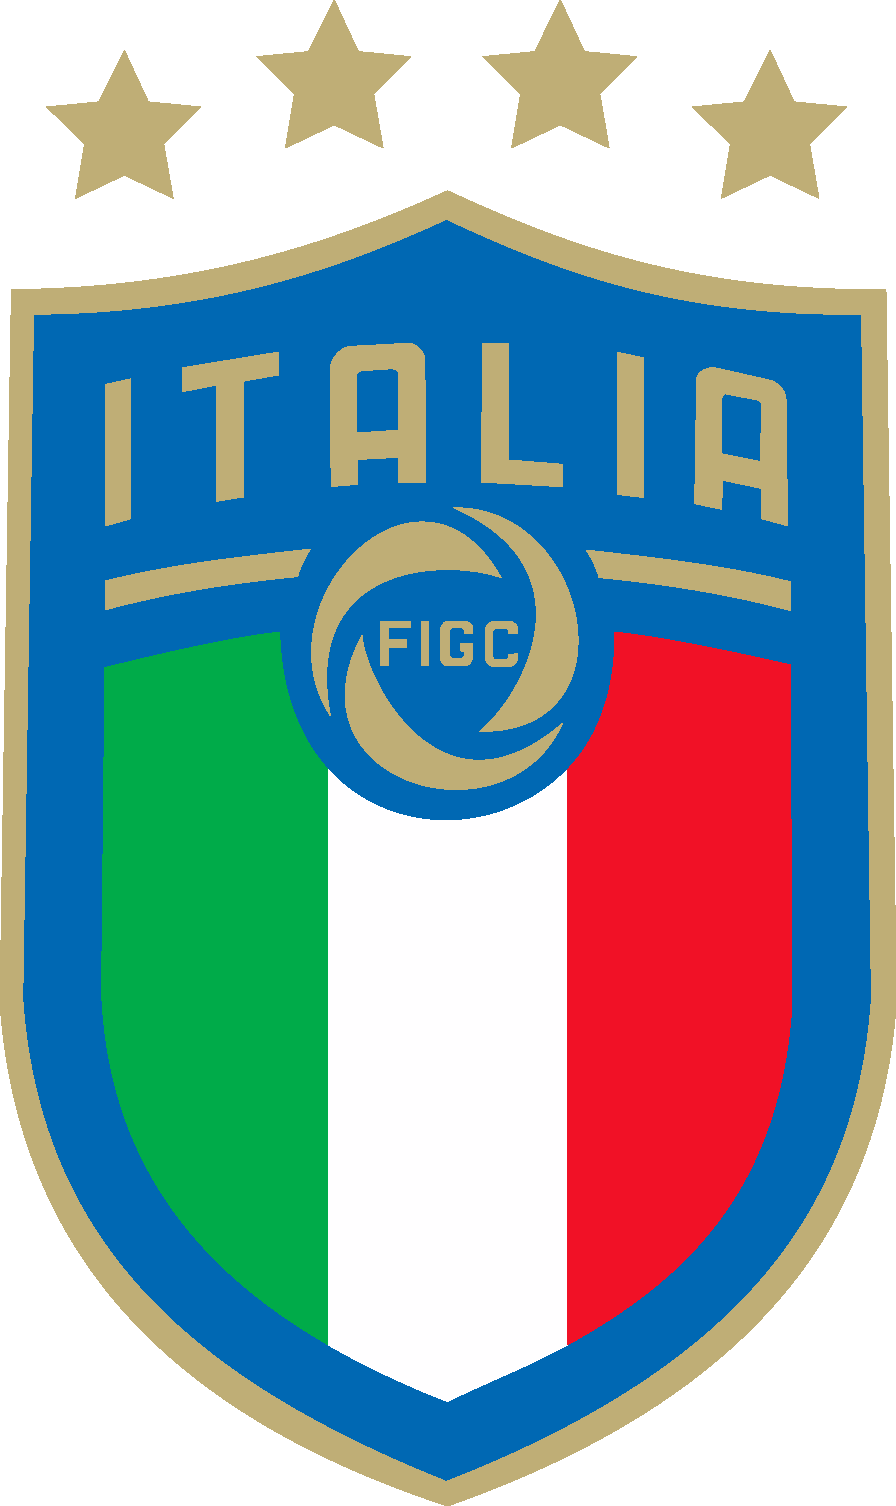 Italian Football Federation & Italy National Football Team.